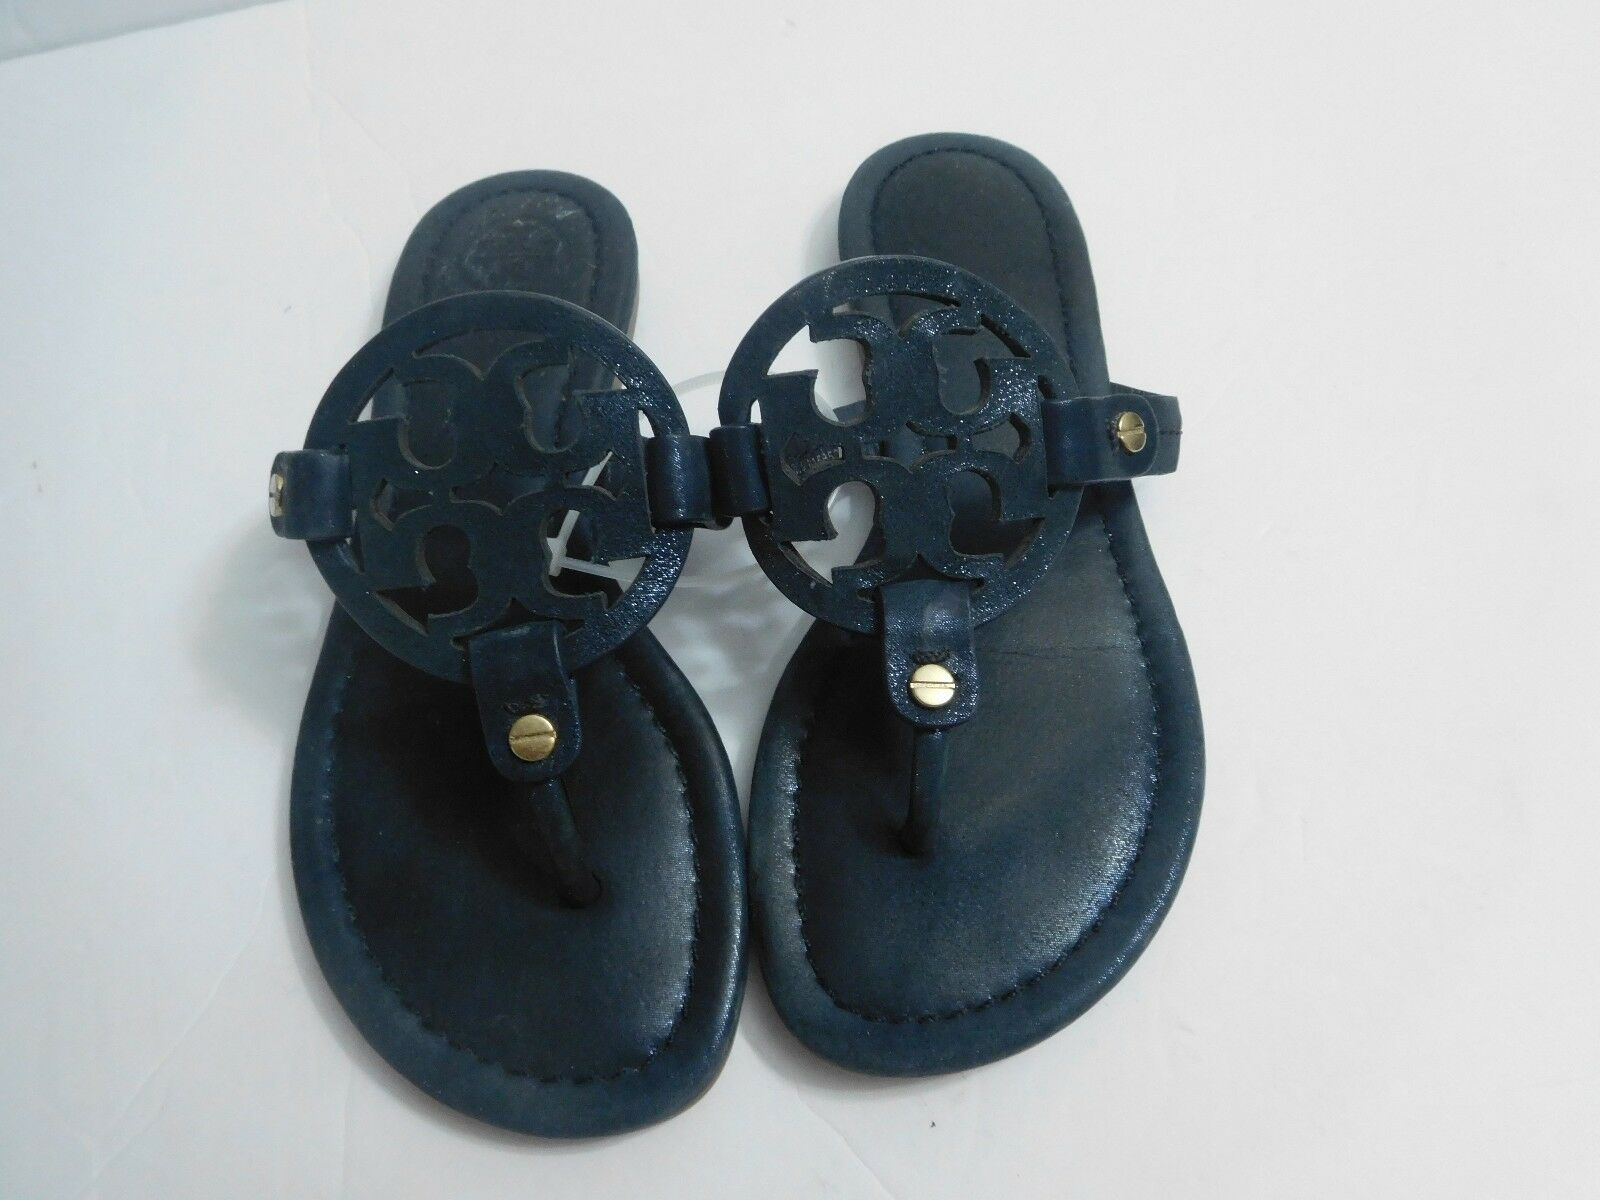 B-405 Tory Burch 'Miller' Flip Flip Flip Flop  Leather (Women) Sz 4 M  195.00 a577f8